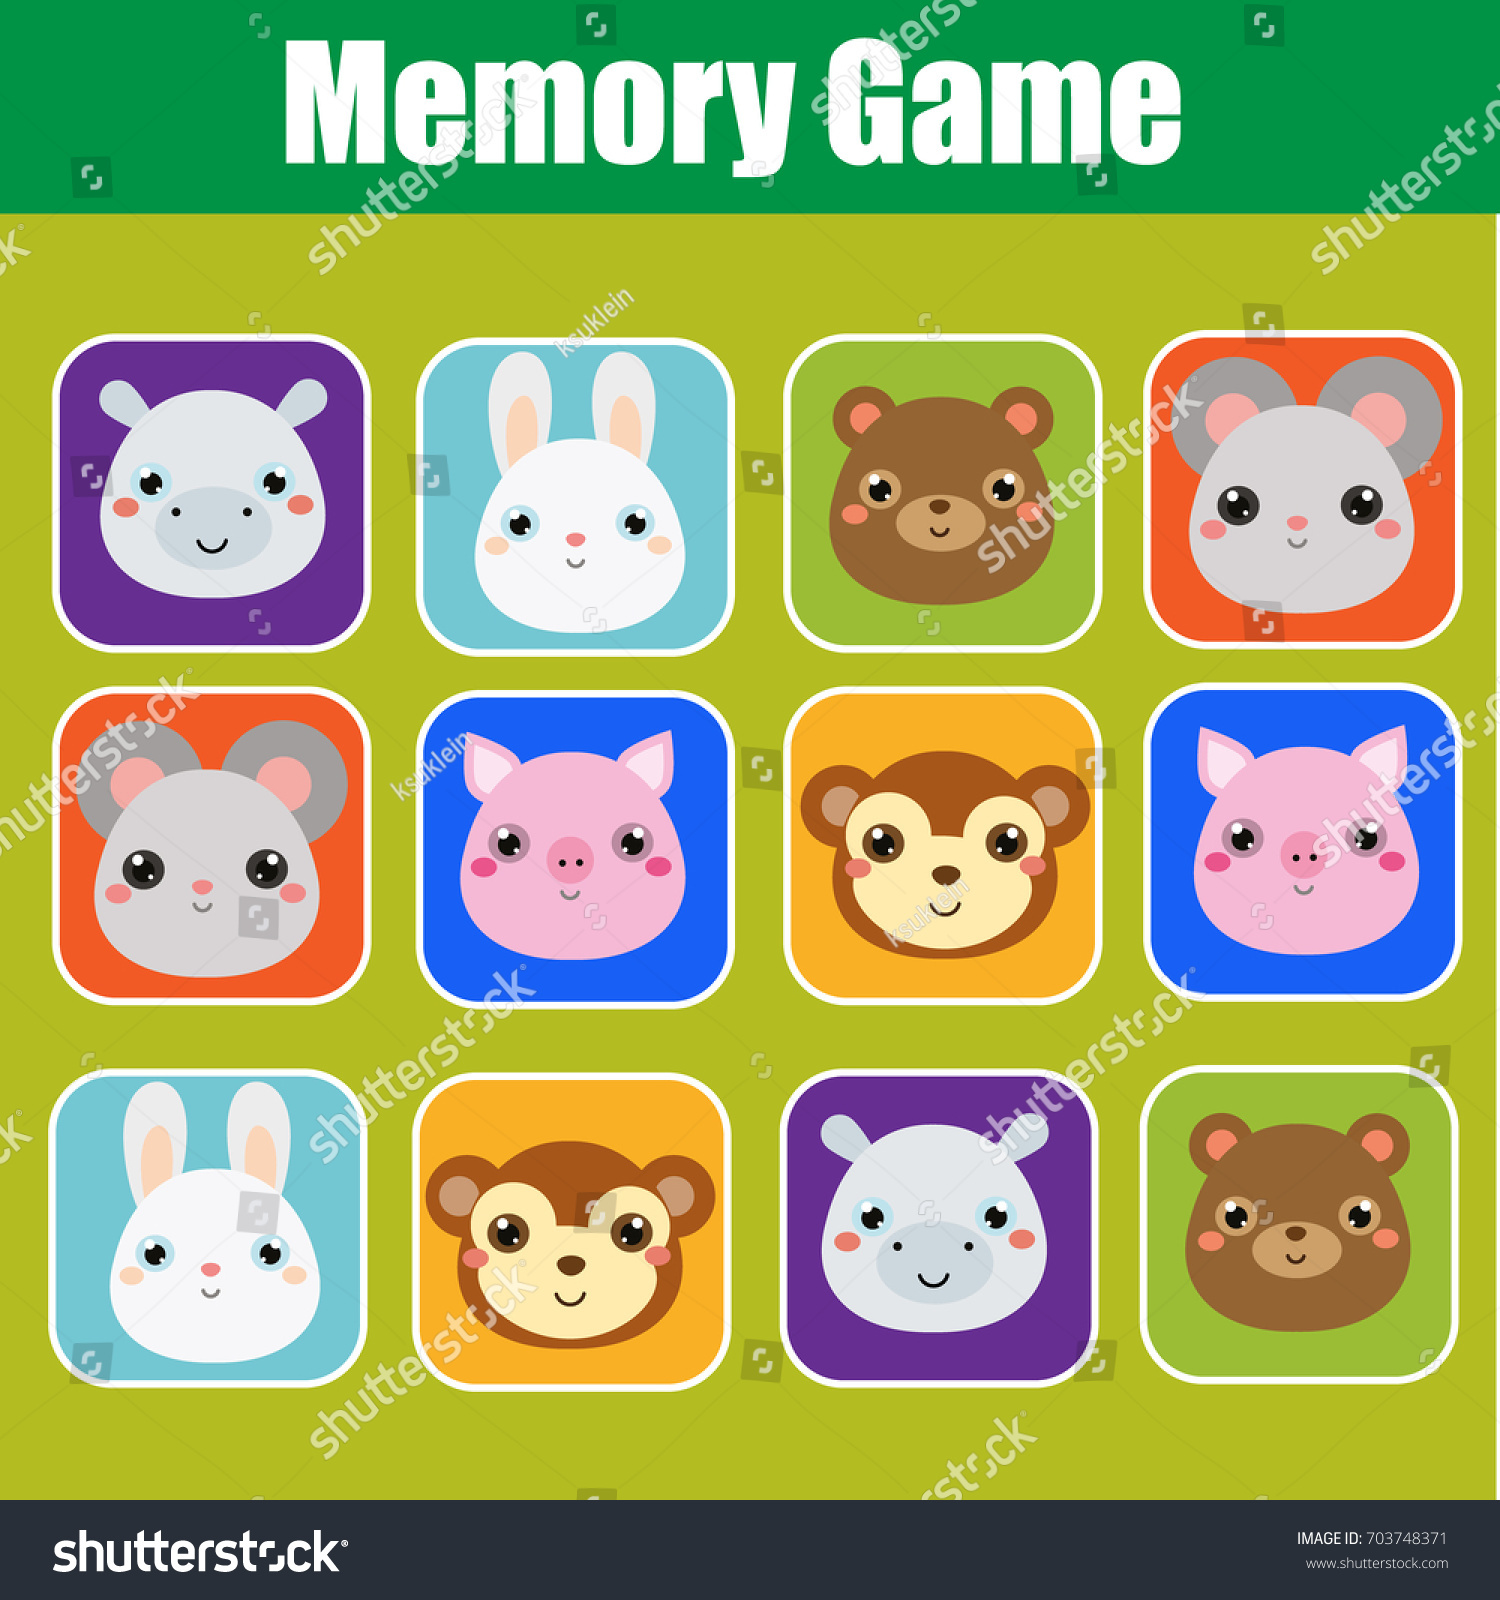 Uncategorized Memory Pairs memory game toddlers educational children kids stock vector for activity with cute animals faces find